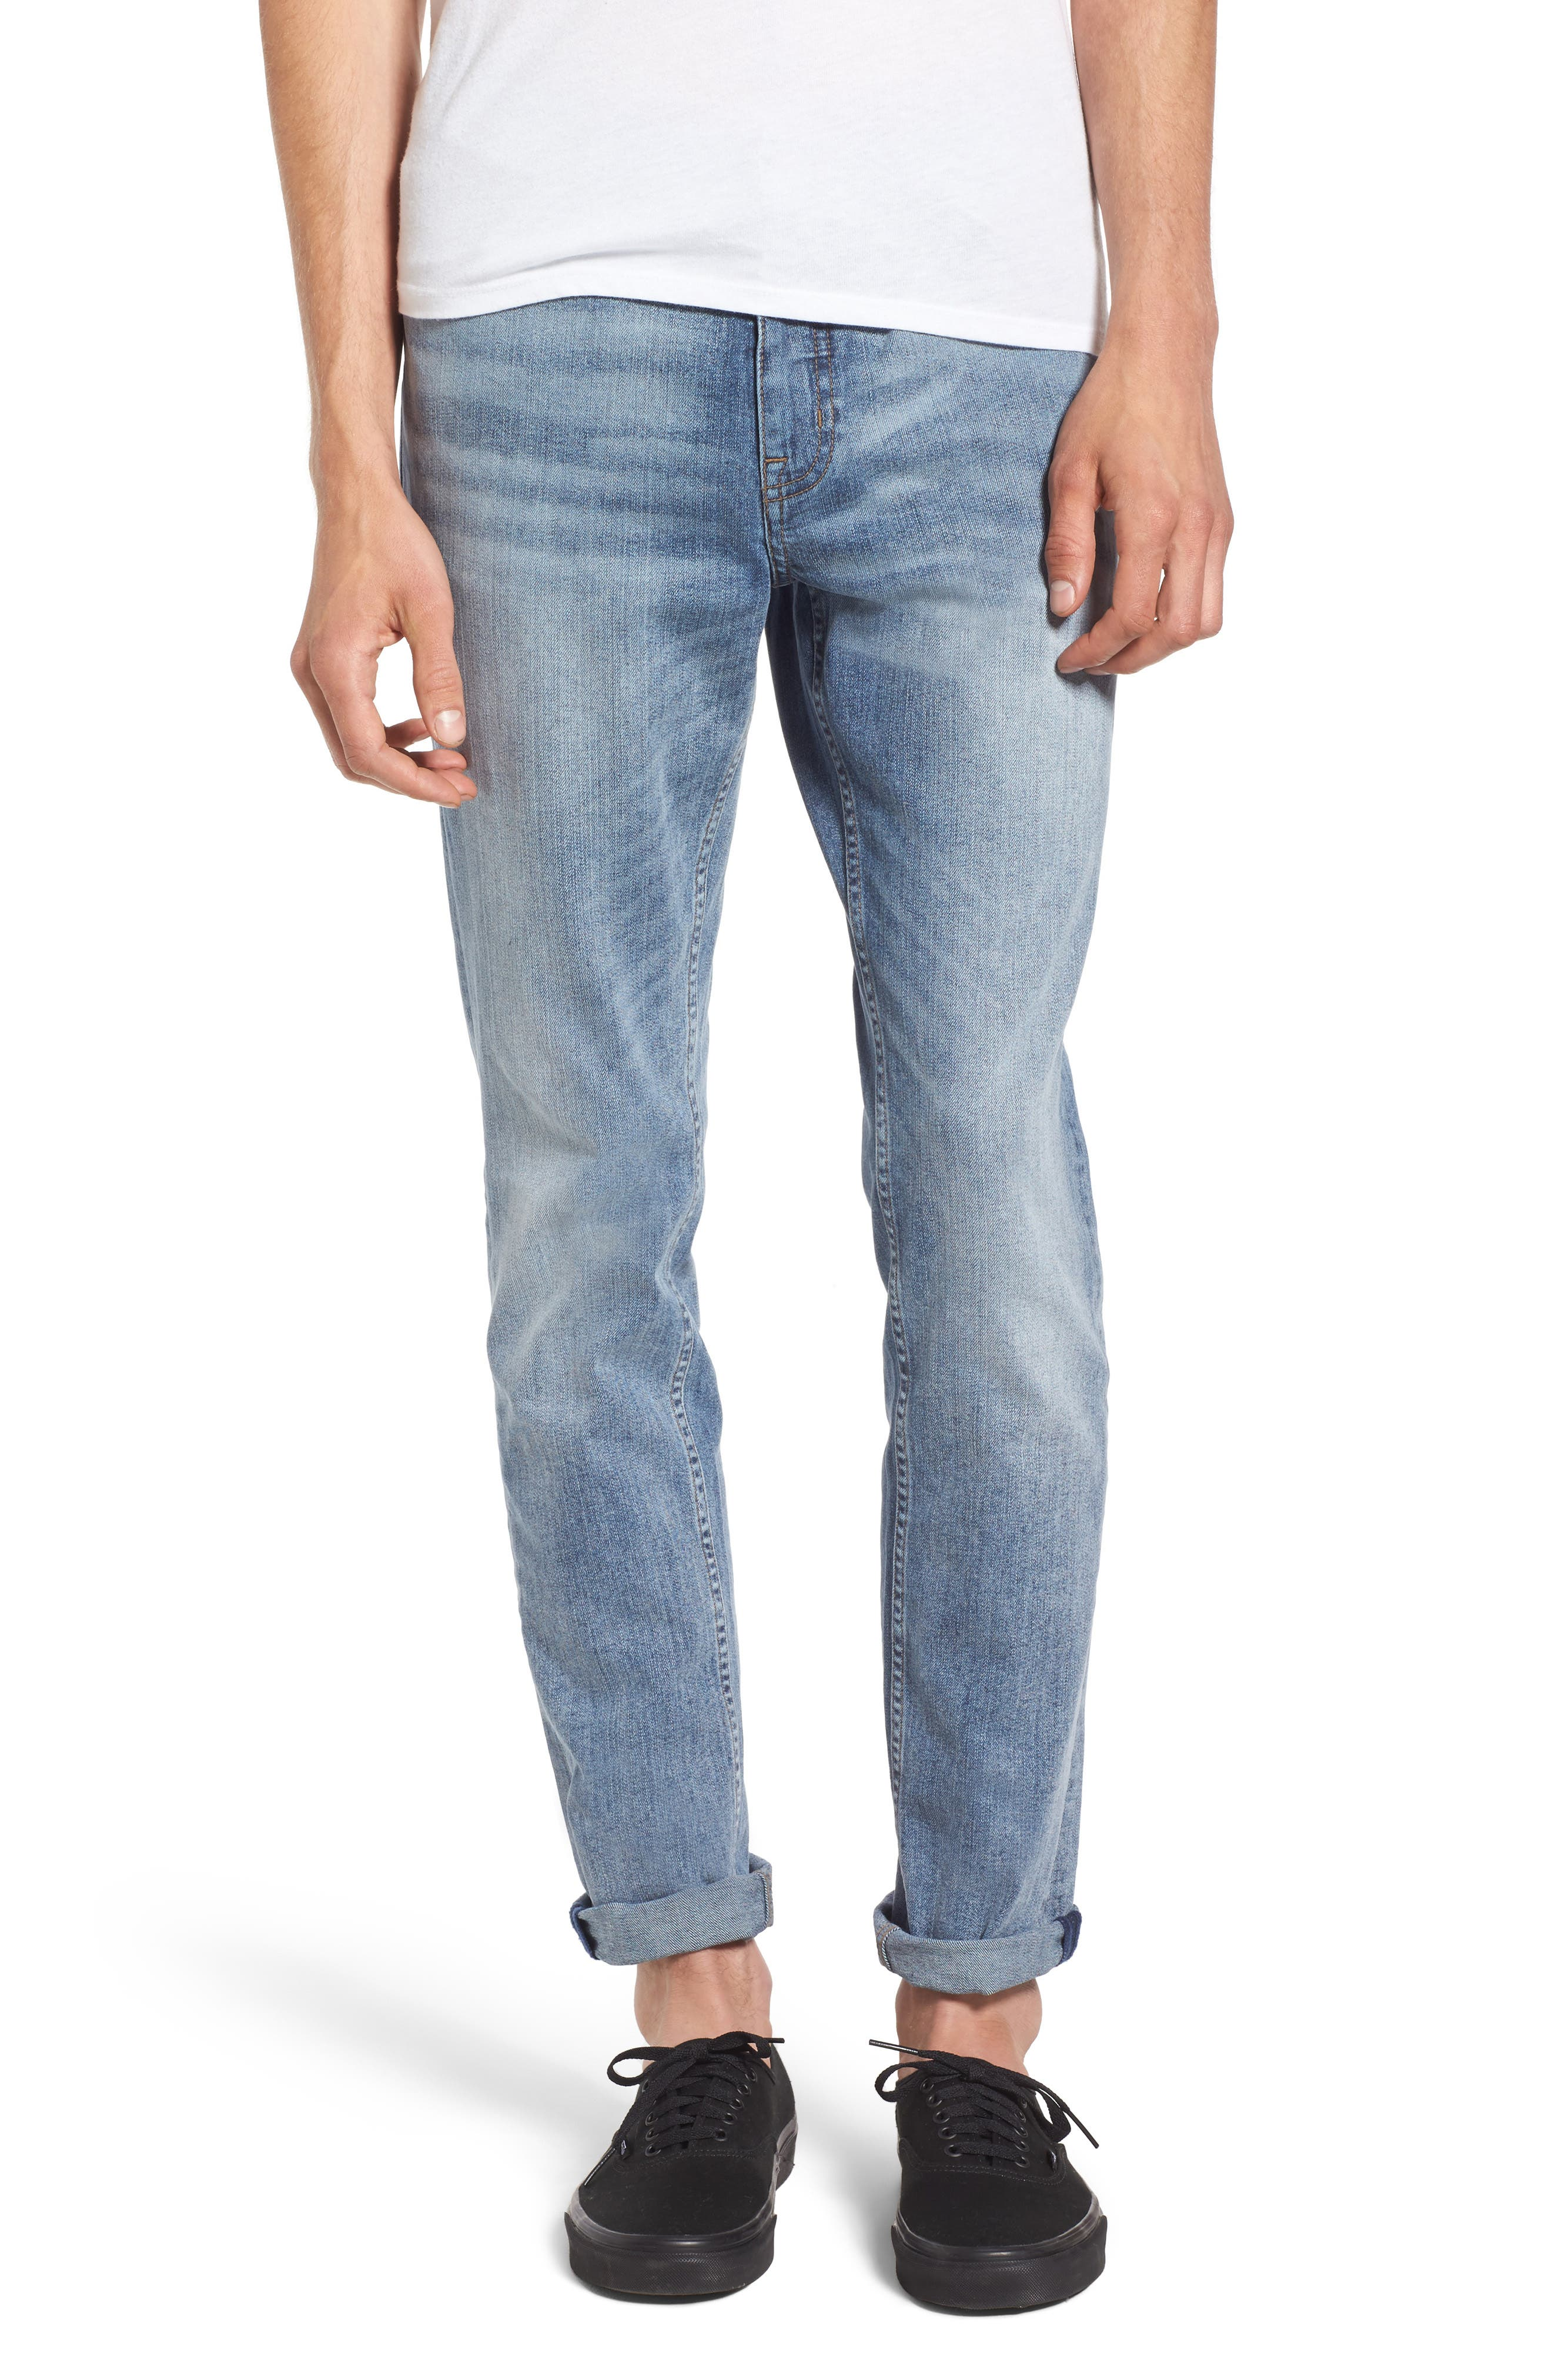 Sonic Skinny Fit Jeans,                             Main thumbnail 1, color,                             458